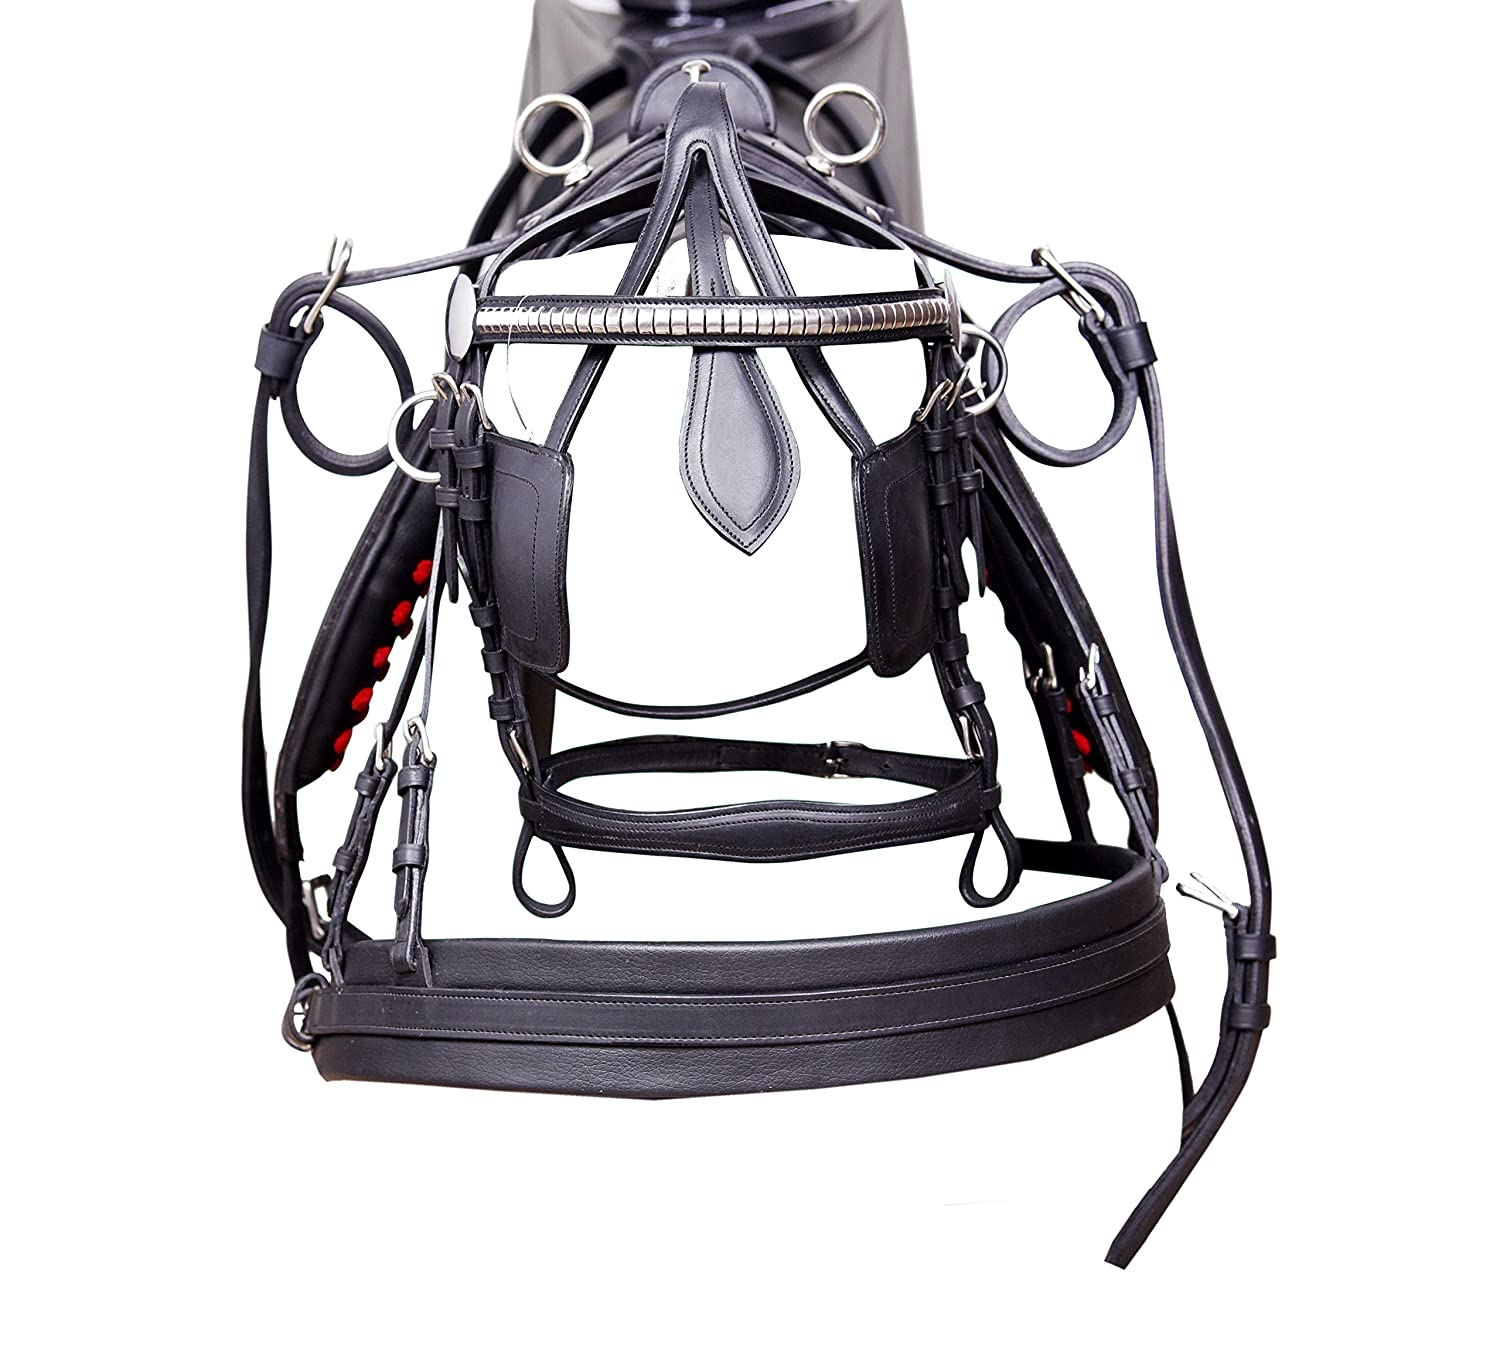 ACES EQUINE LEATHER HEAVY DUTY HORSE CART DRIVING HARNESS BLACK IN SIZE FULL HORSE